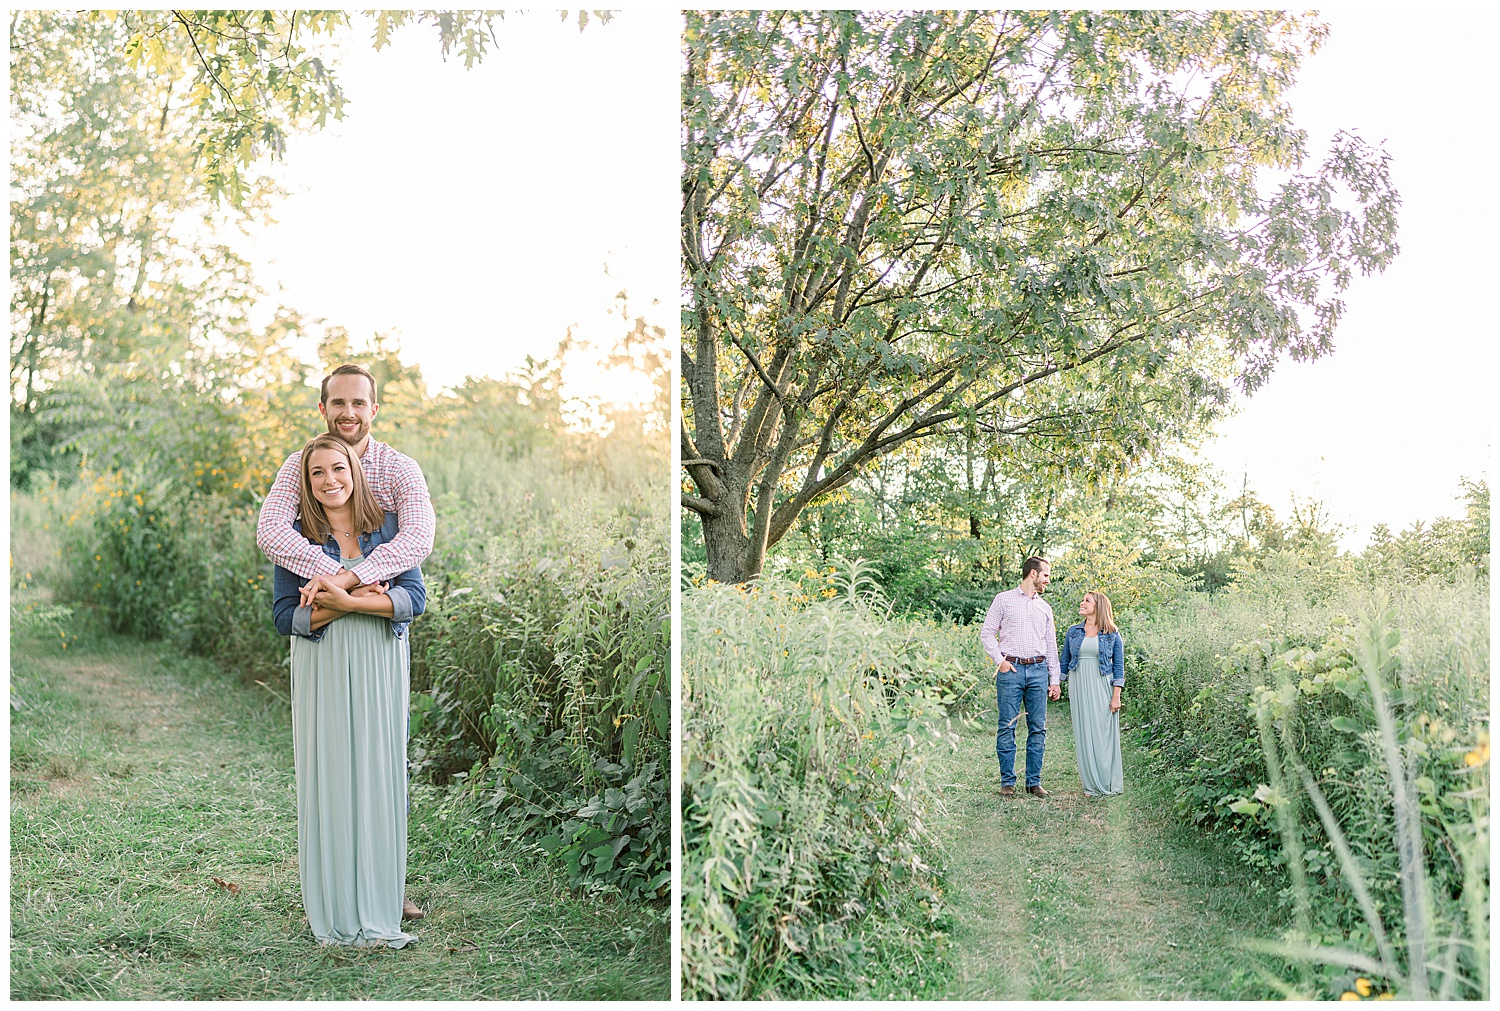 Cox_Arboretum_Anniversary_Session_Miamisburg_Ohio_Cassandra_Janina_Photography_Ohio_Wedding_Photographer_0277.jpg